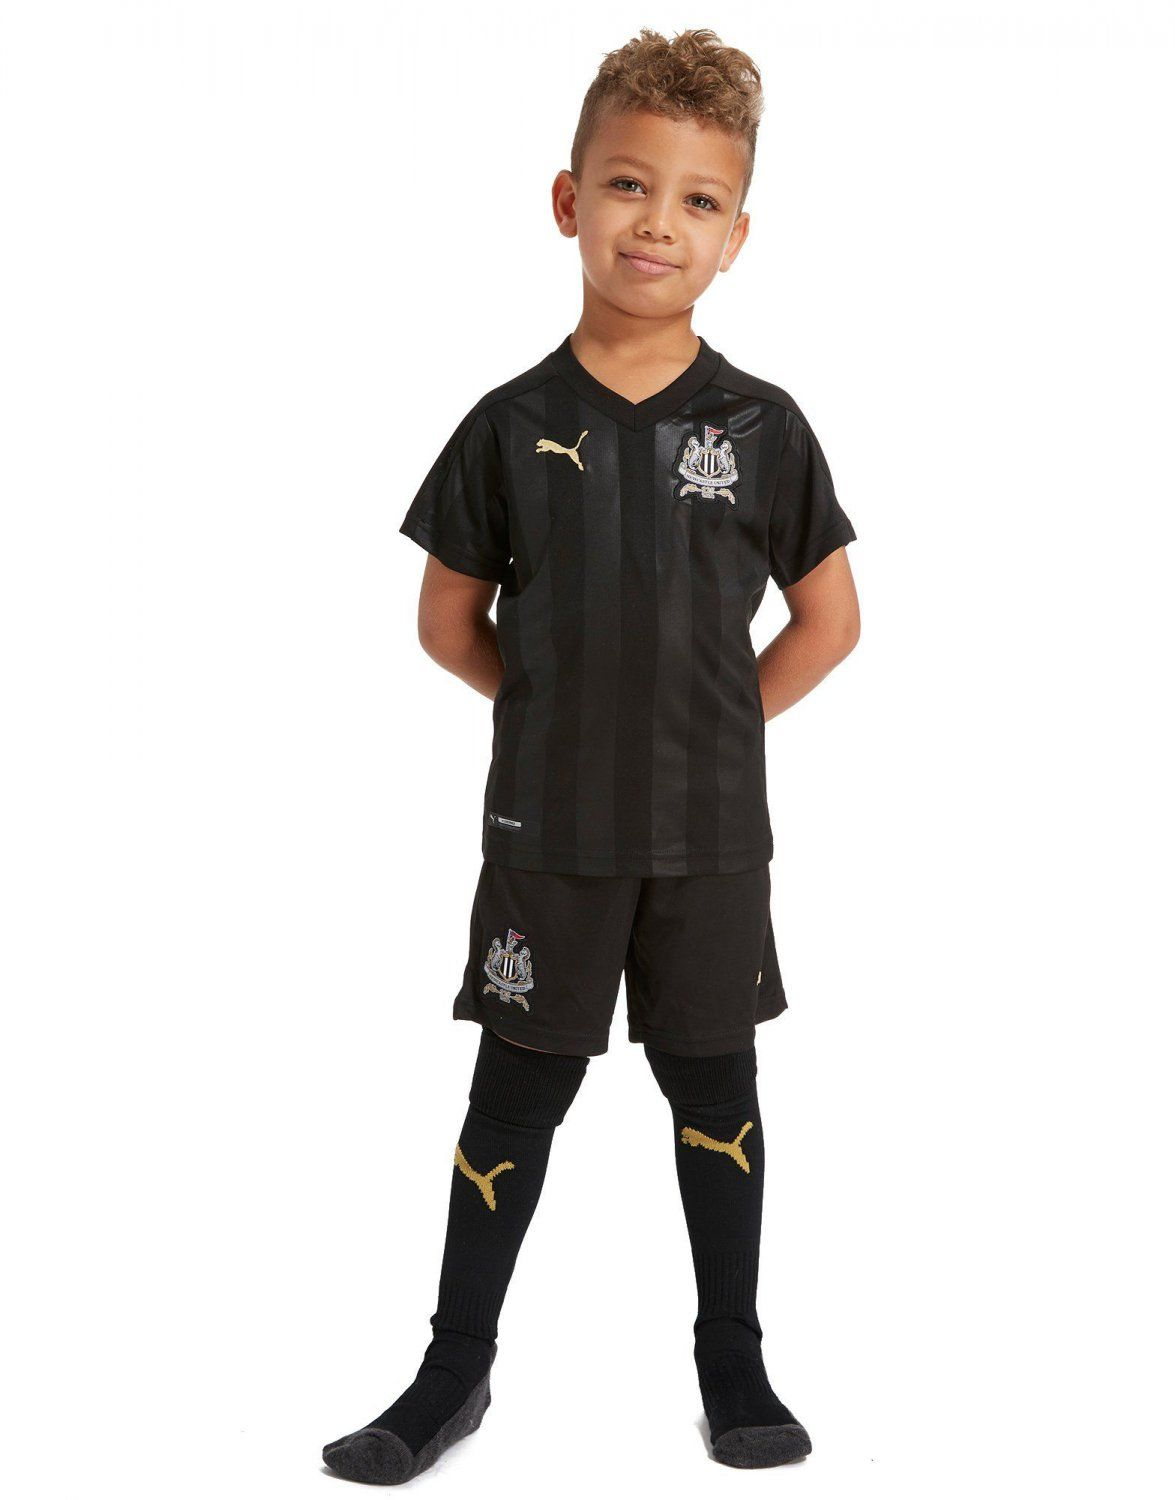 Newcastle+away+children s+wear+2018-2019+Jersey+W+Shorts+Kid+Youth+For+Age+3 -13 27e433241e426